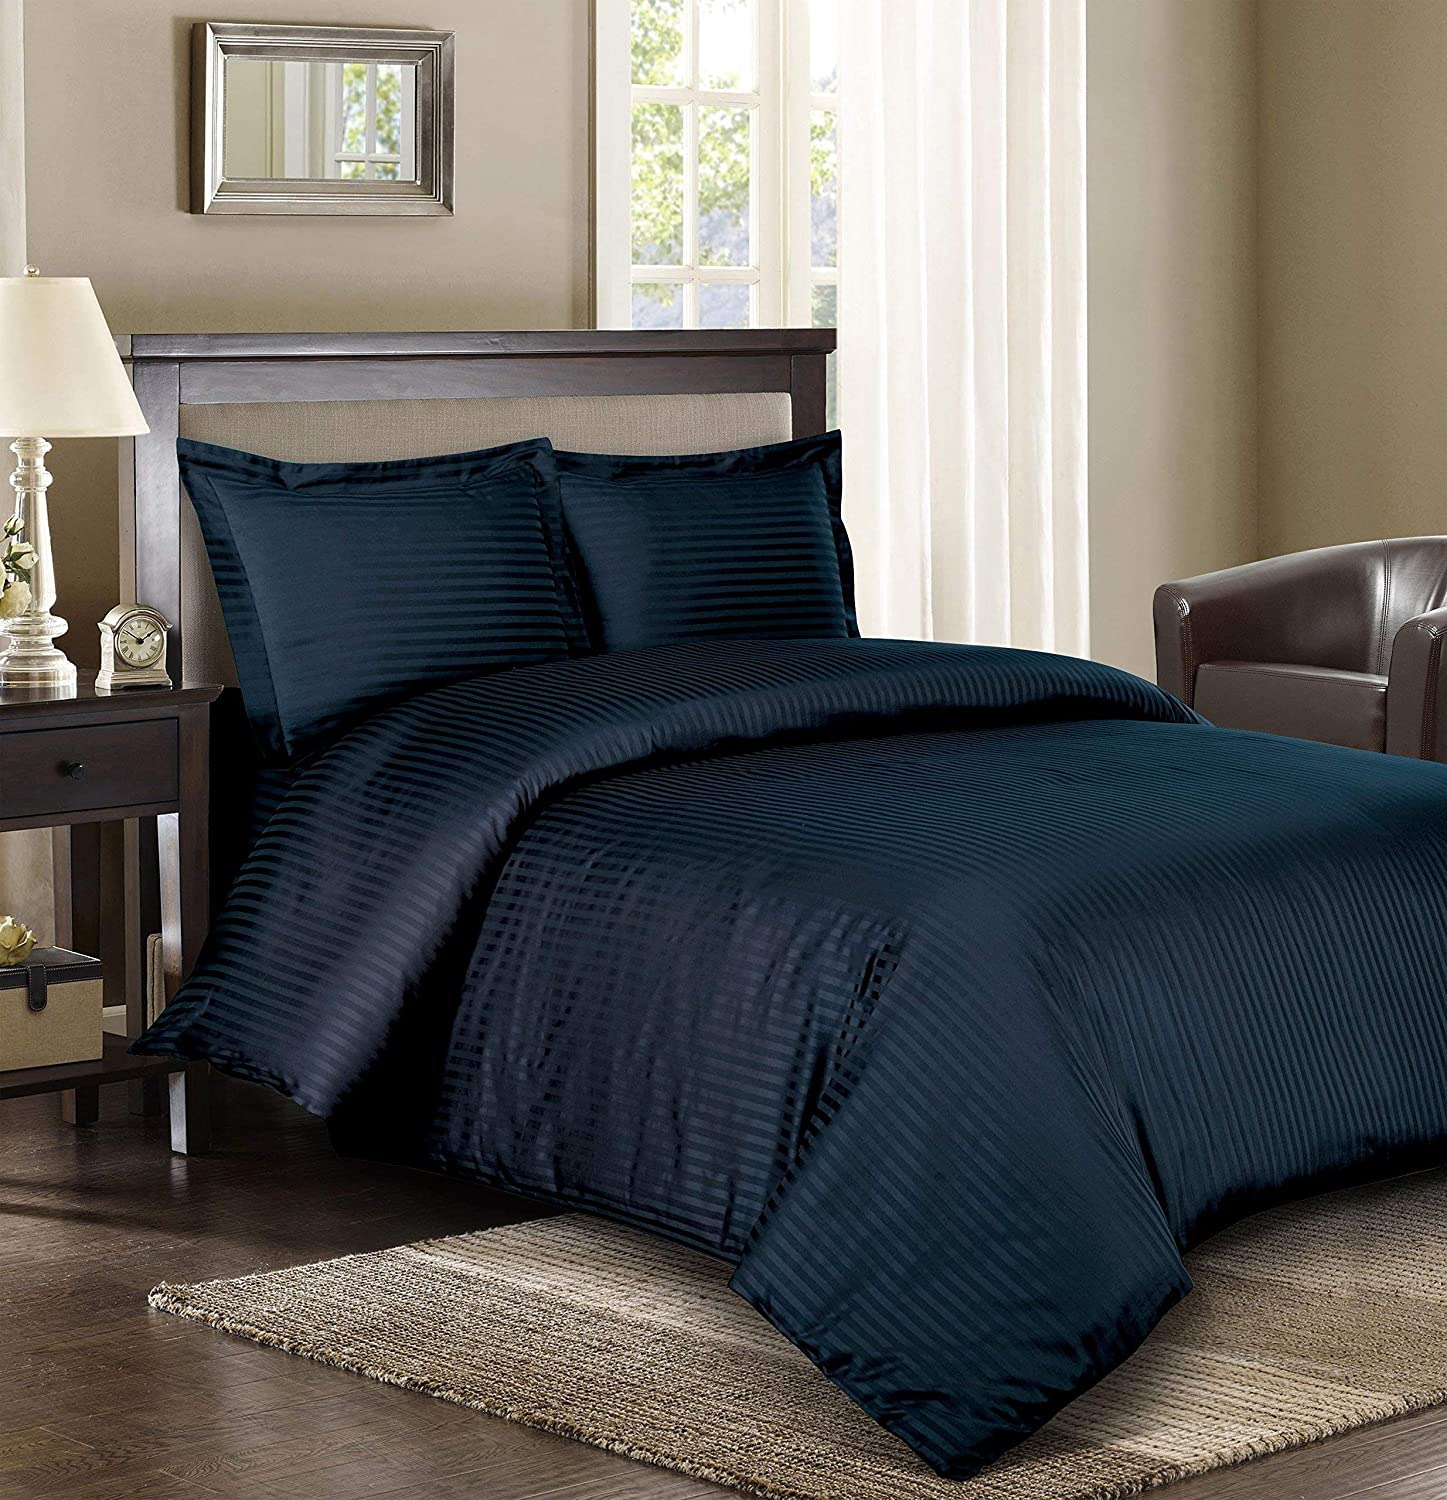 Best Bedding 800 Series Luxury Striped 1 Piece Duvet Cover Extra Soft Egyptian Cotton Soft /& Easy Care,Twin XL Beige